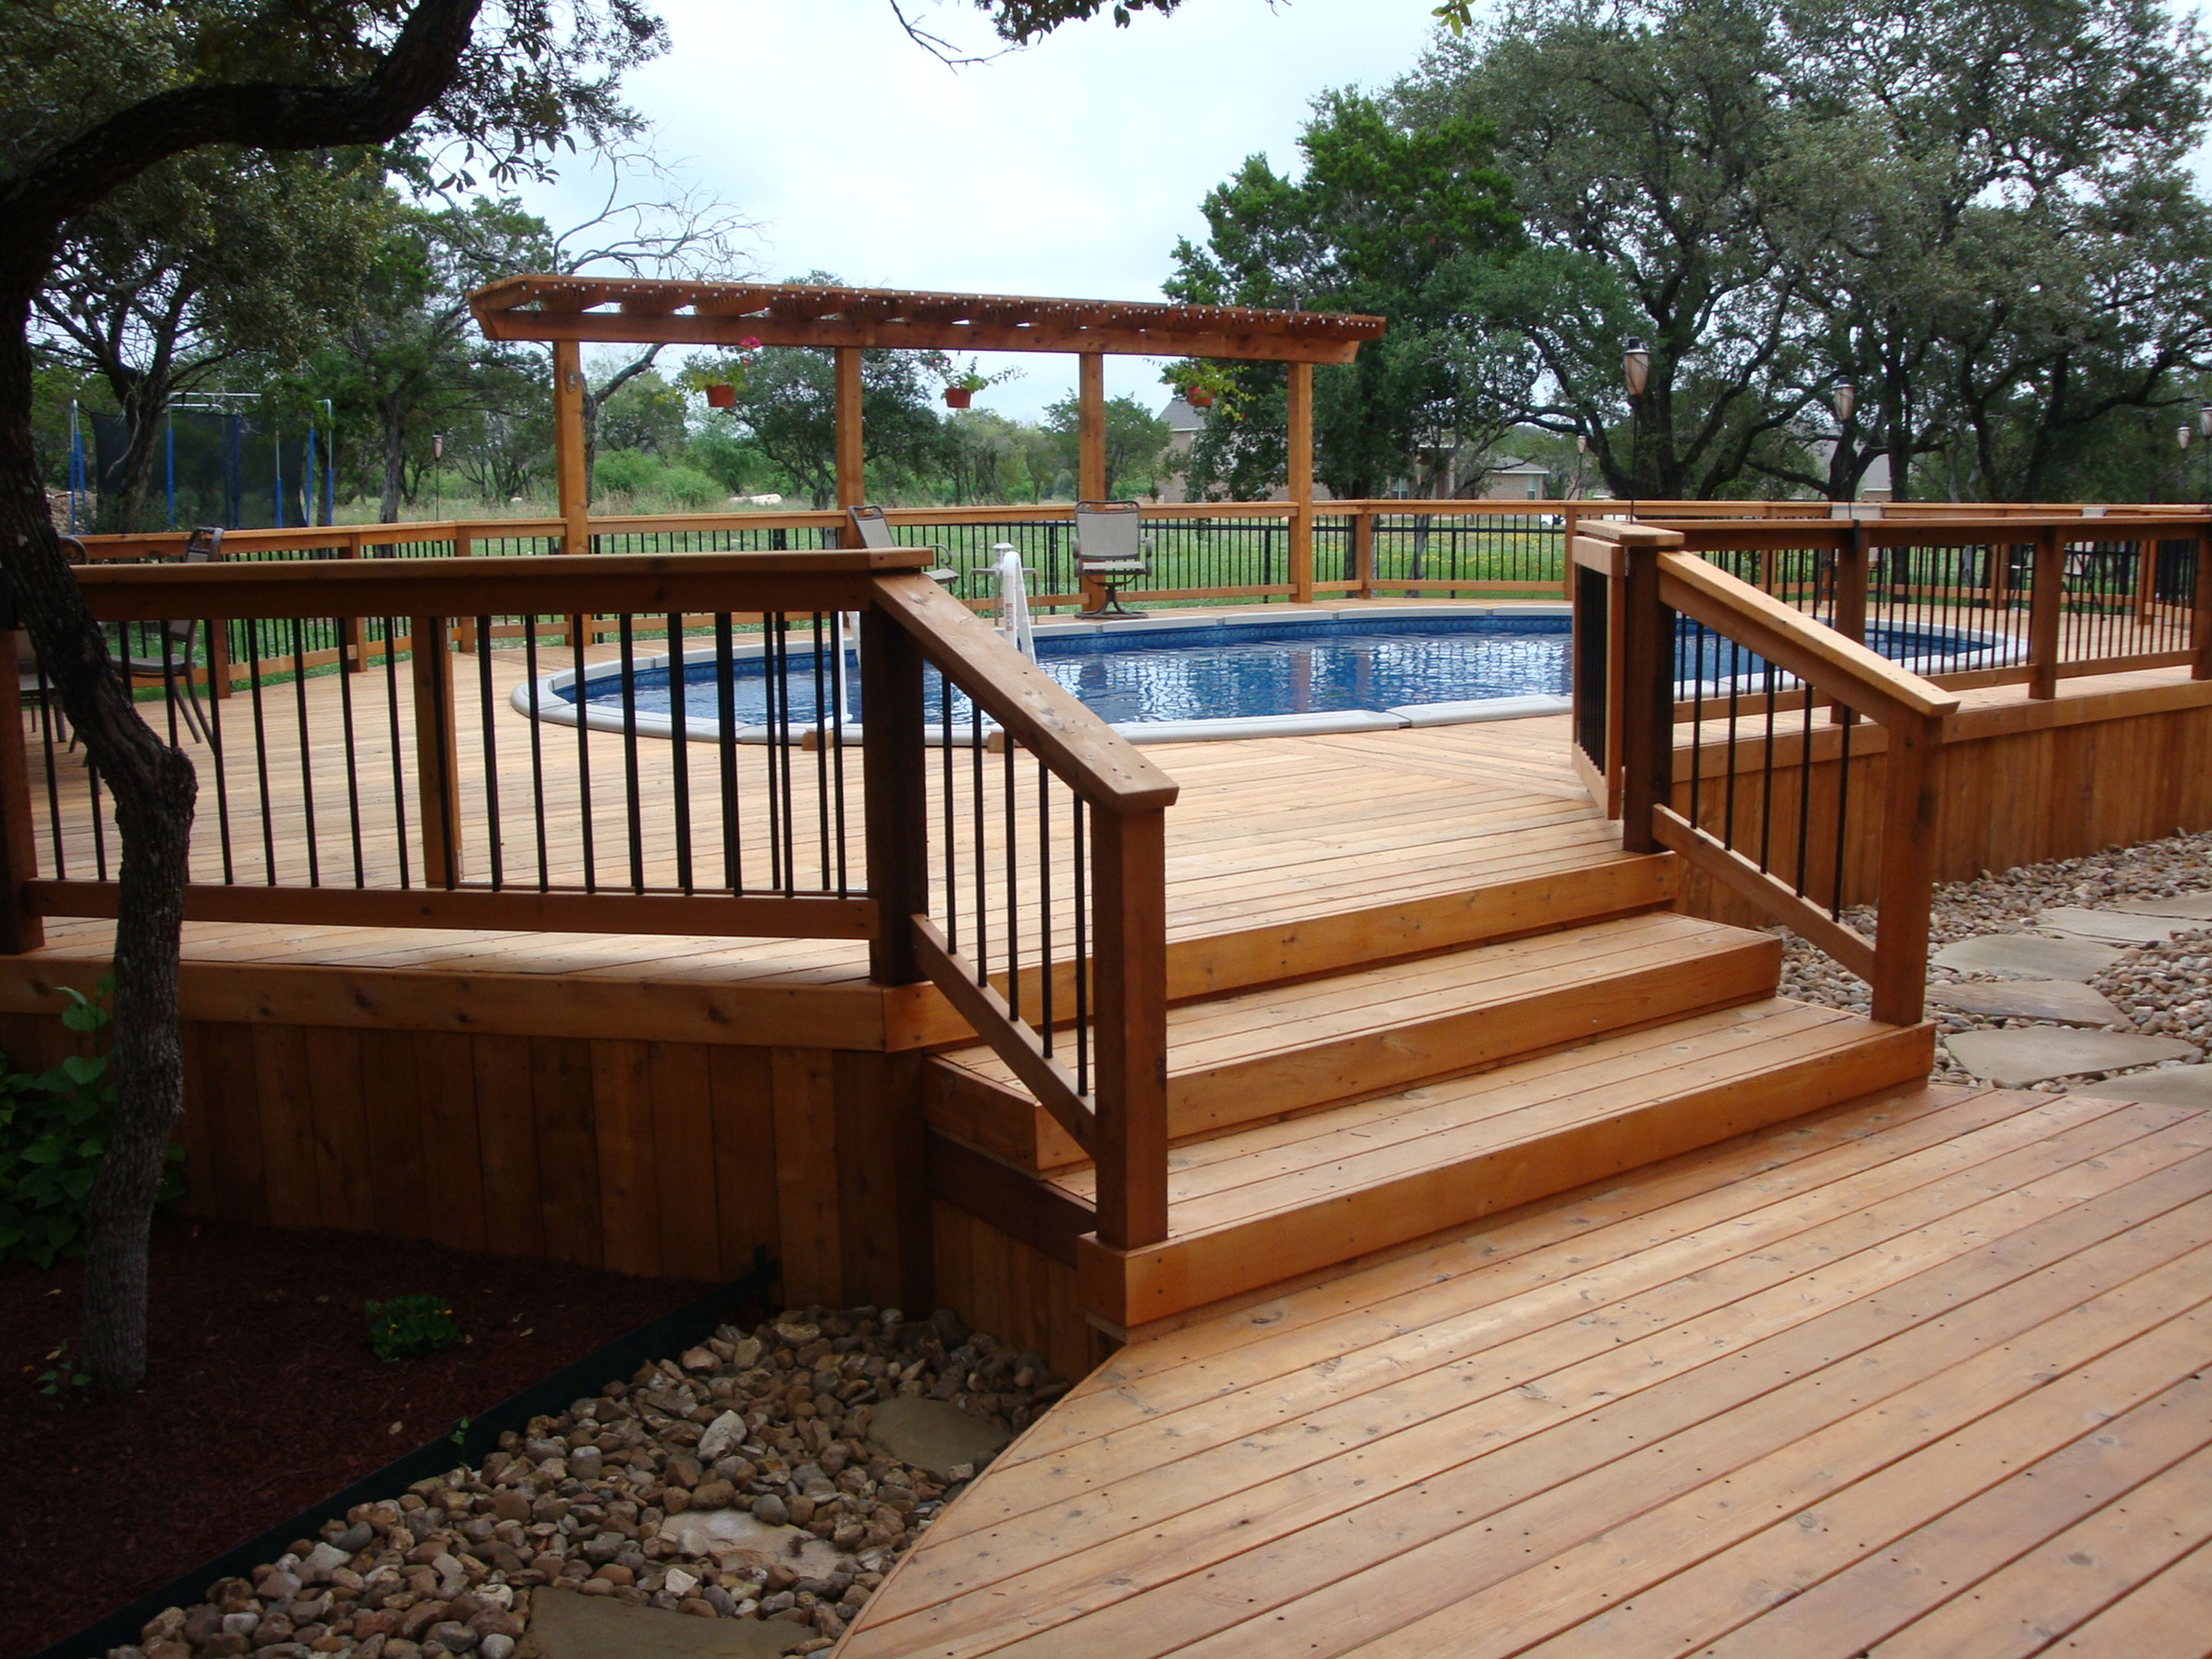 Awesome Home Deck Designs | HomesFeed on Pool Patios Ideas id=45881